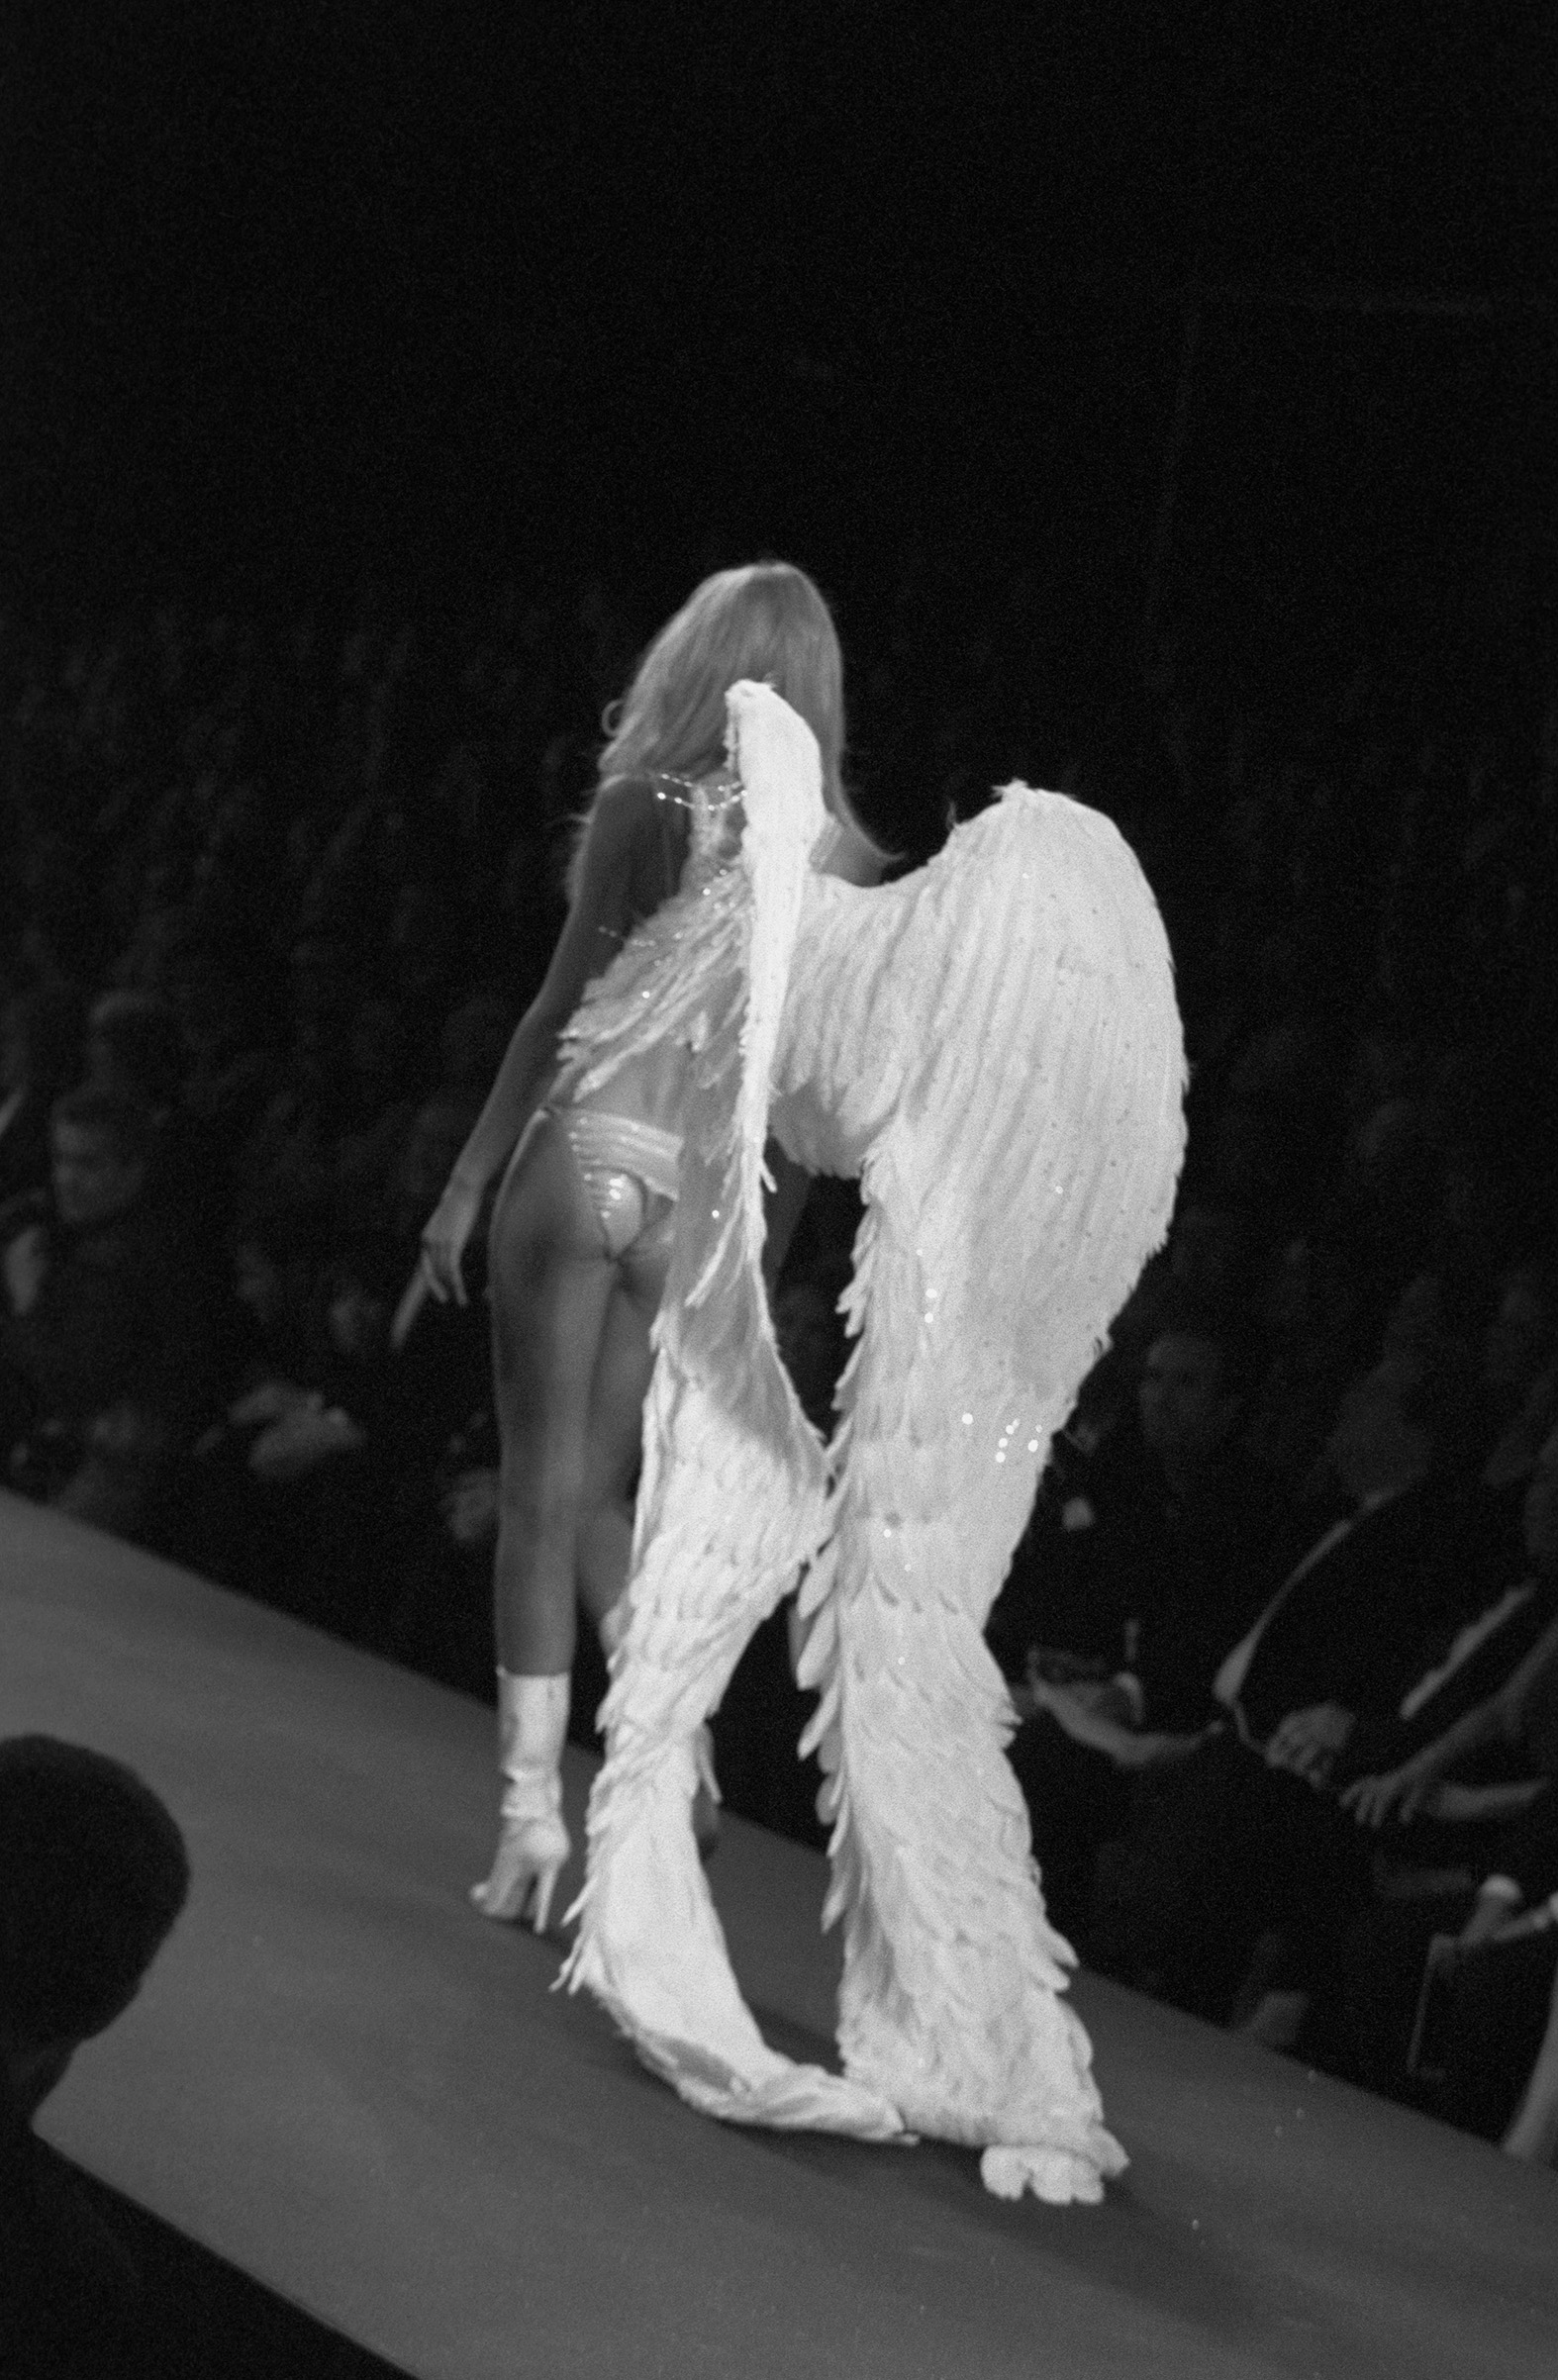 Supermodel and Victoria's Secret Angel Heidi Klum walks the brand's renowned fashion show in Cannes, France, in 2000